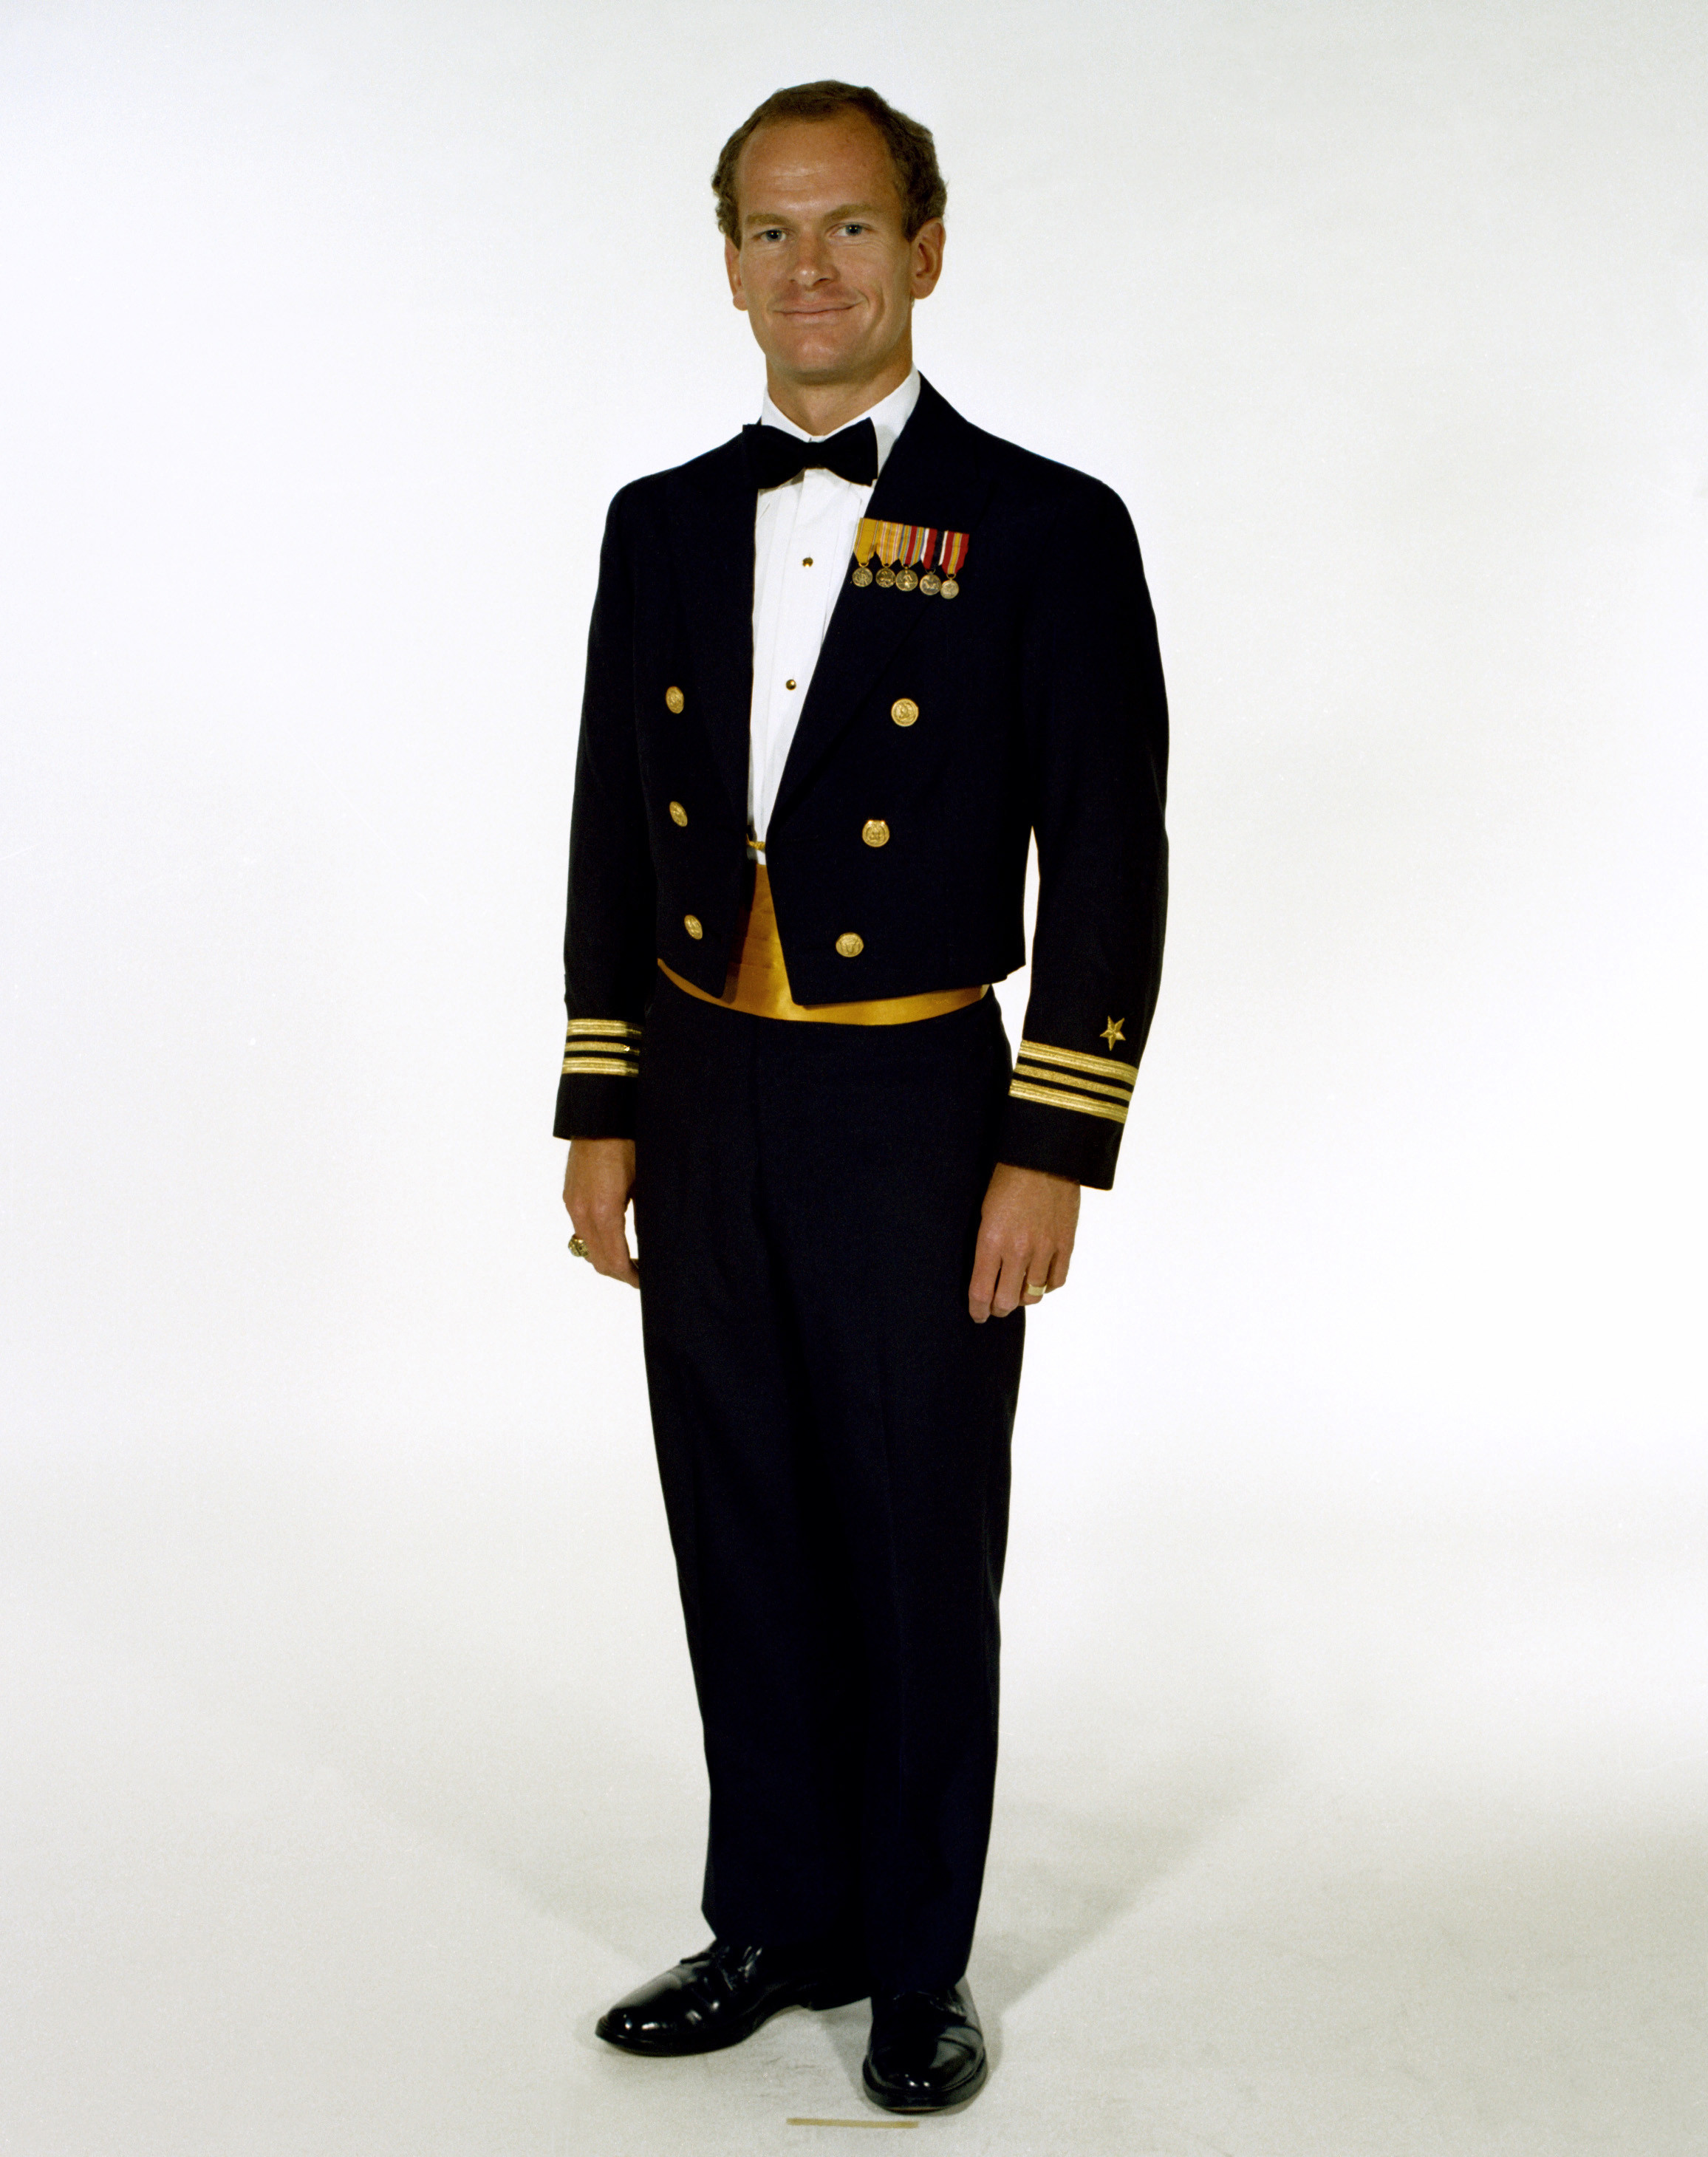 Dinner Dress Blues  Uniform Dinner dress blue jacket male Navy officers